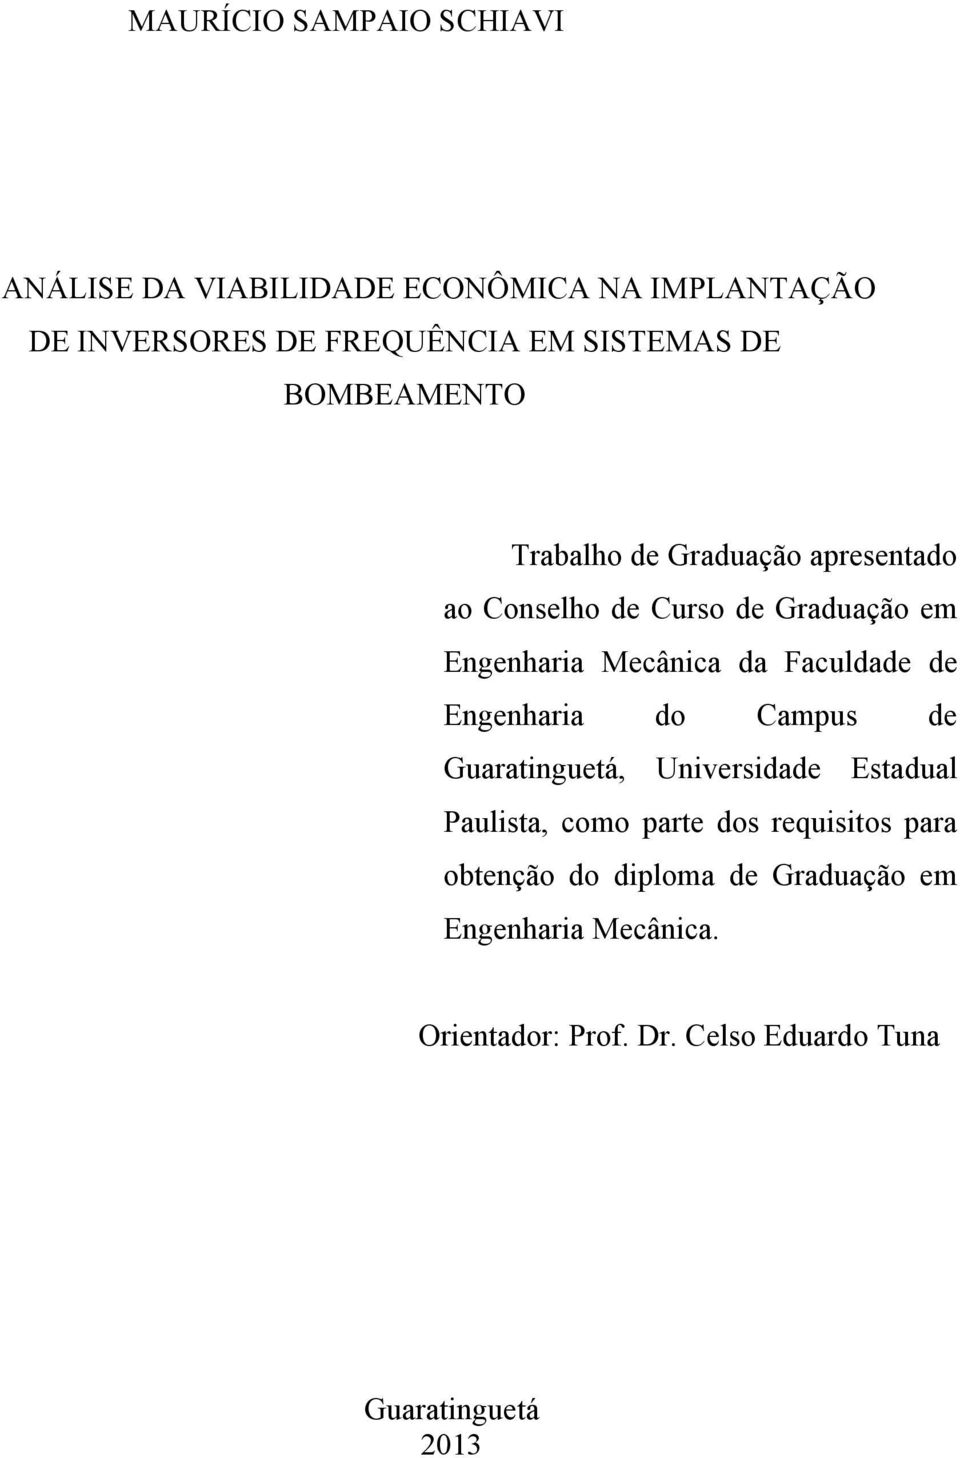 Faculdade de Engenharia do Campus de Guaratinguetá, Universidade Estadual Paulista, como parte dos requisitos